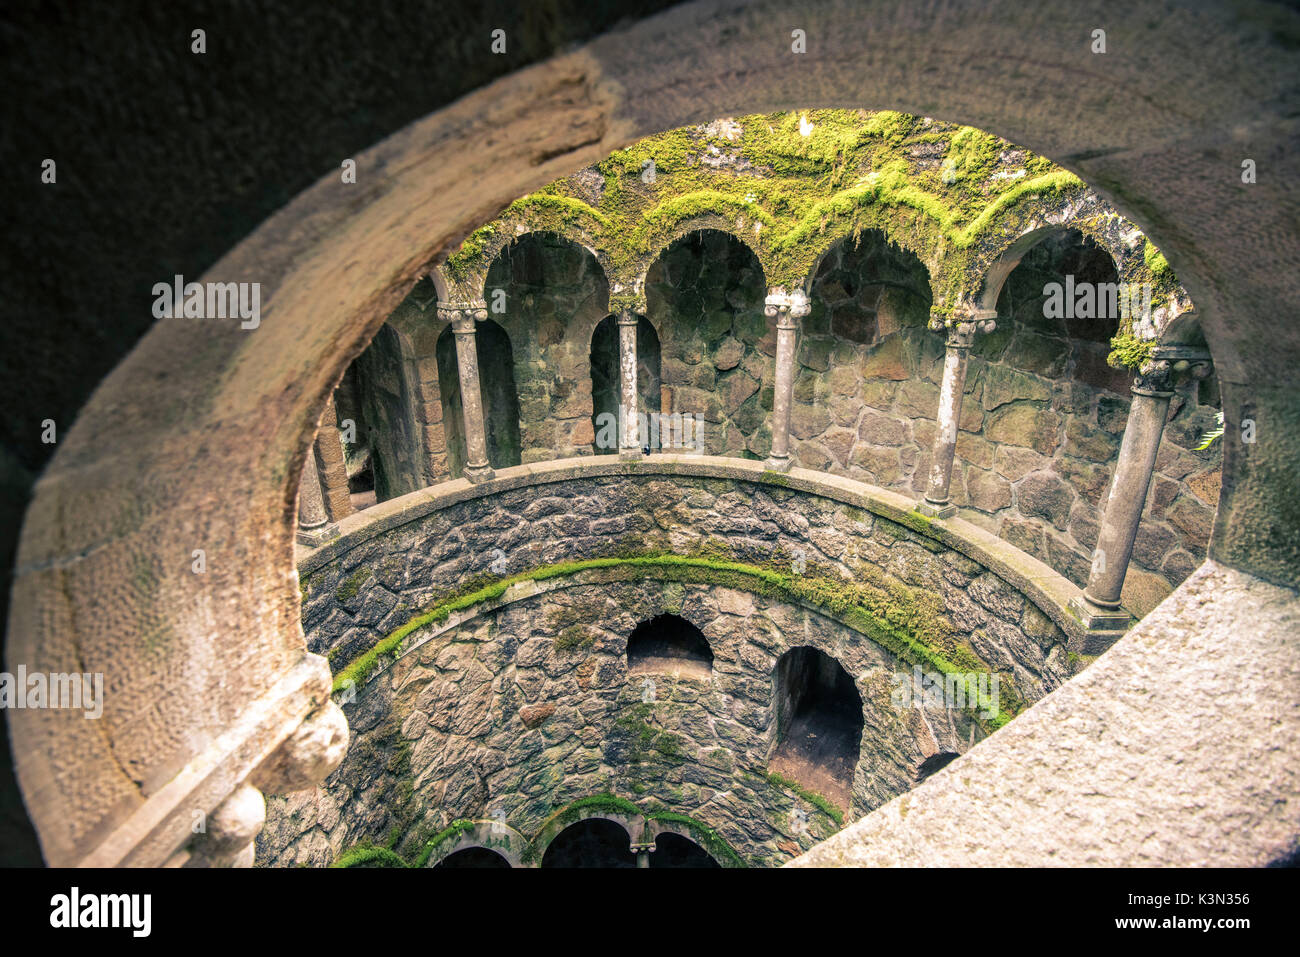 Sintra, Lisbon district, Portugal. Initiation well, also called as Inverted Tower. - Stock Image